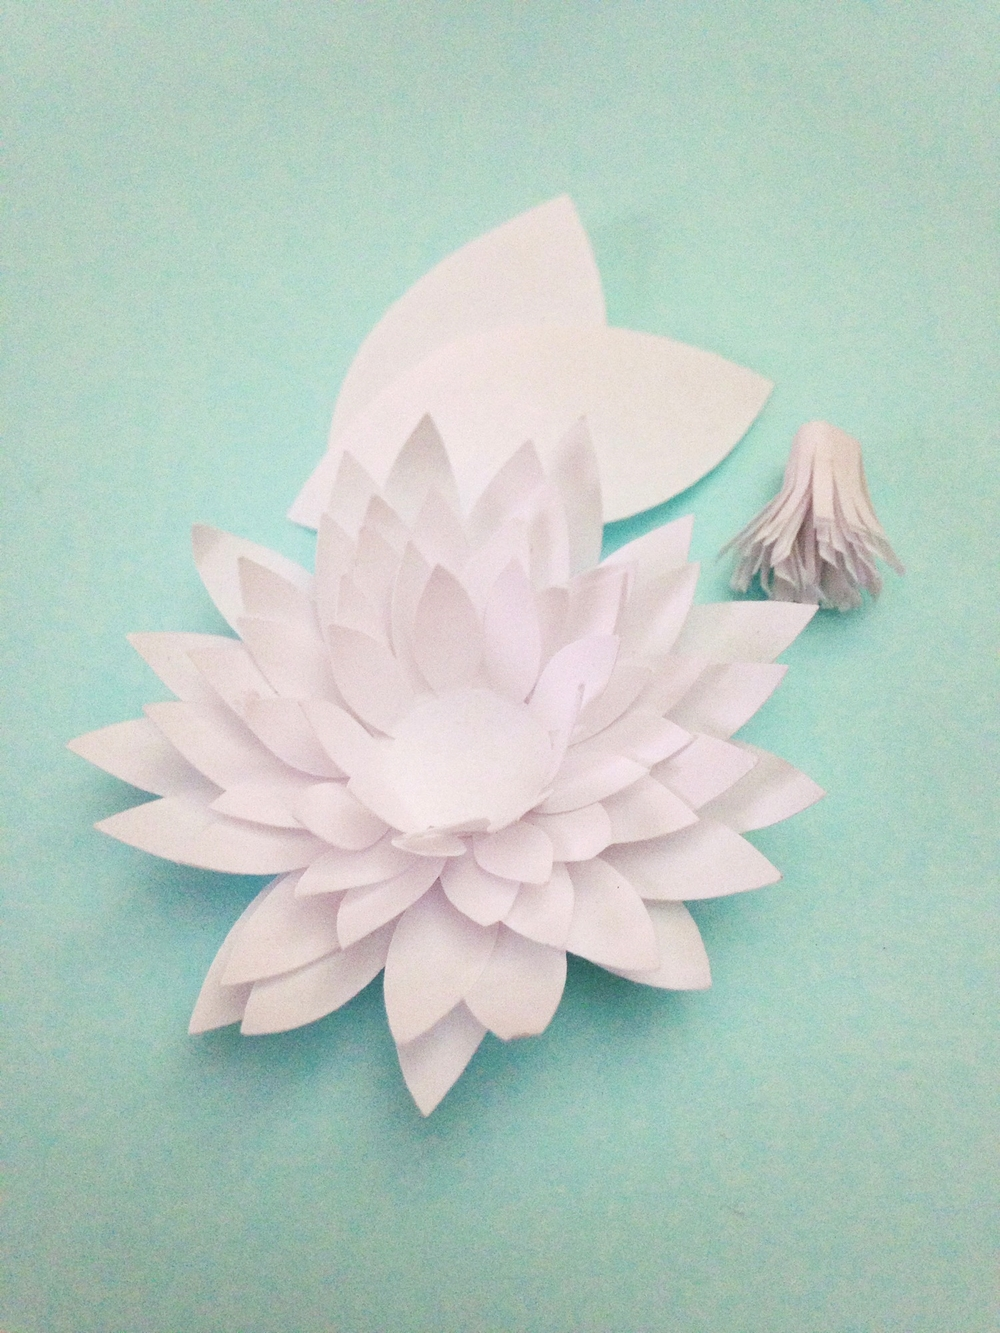 Paper water lilies chrysanthemums tutorial only just becoming img0559g mightylinksfo